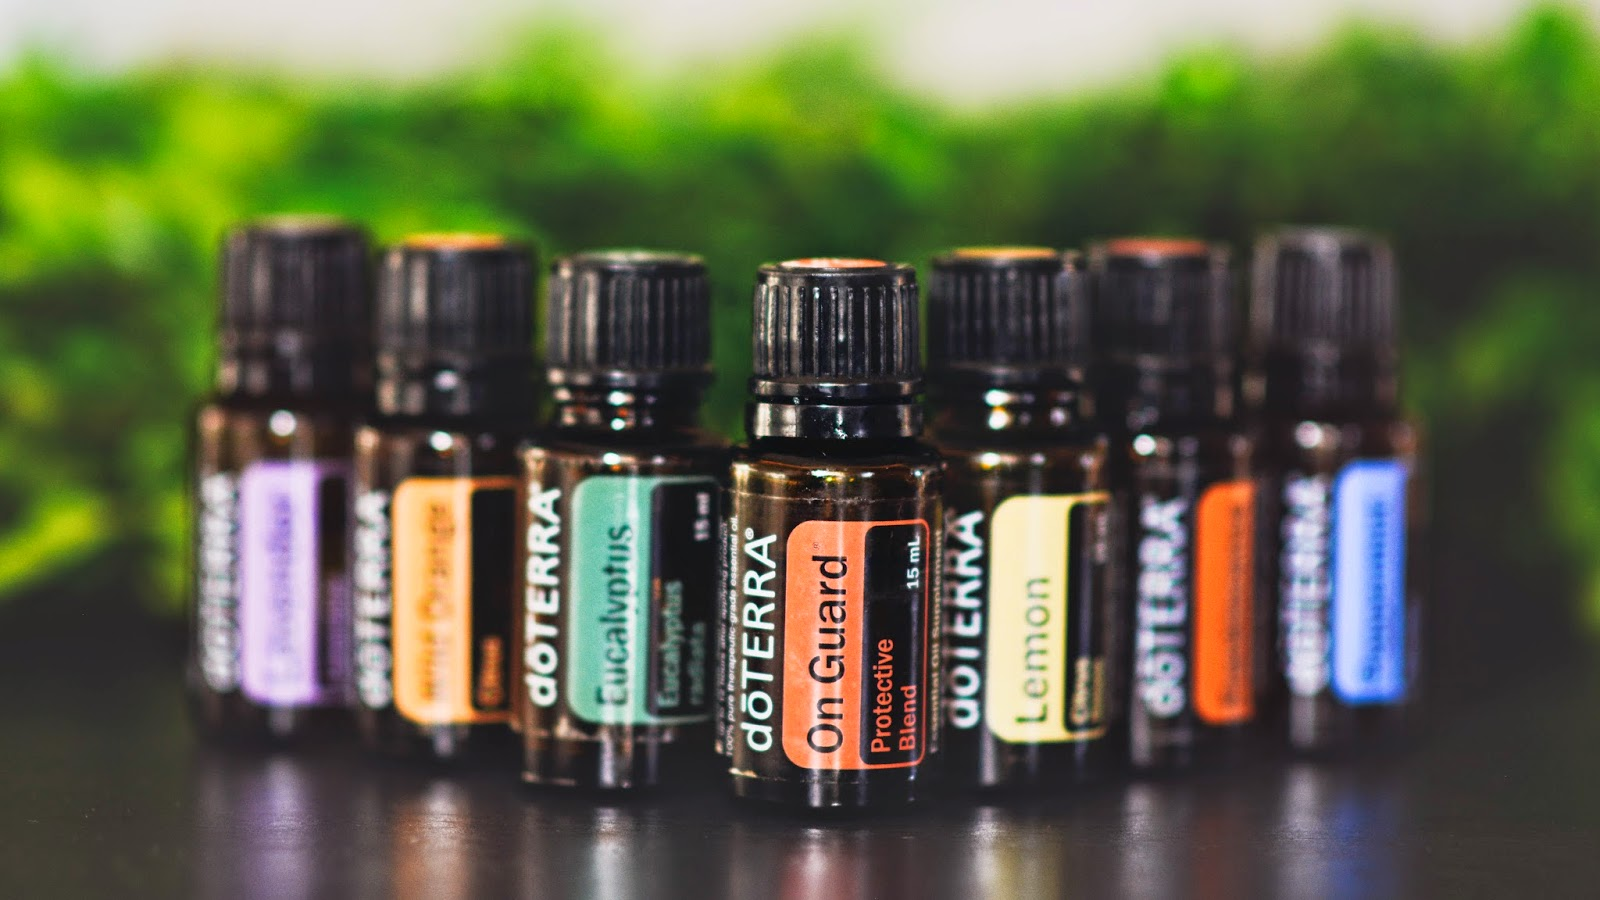 doterra-essential-oils-home-essentials-kit-uses.jpg